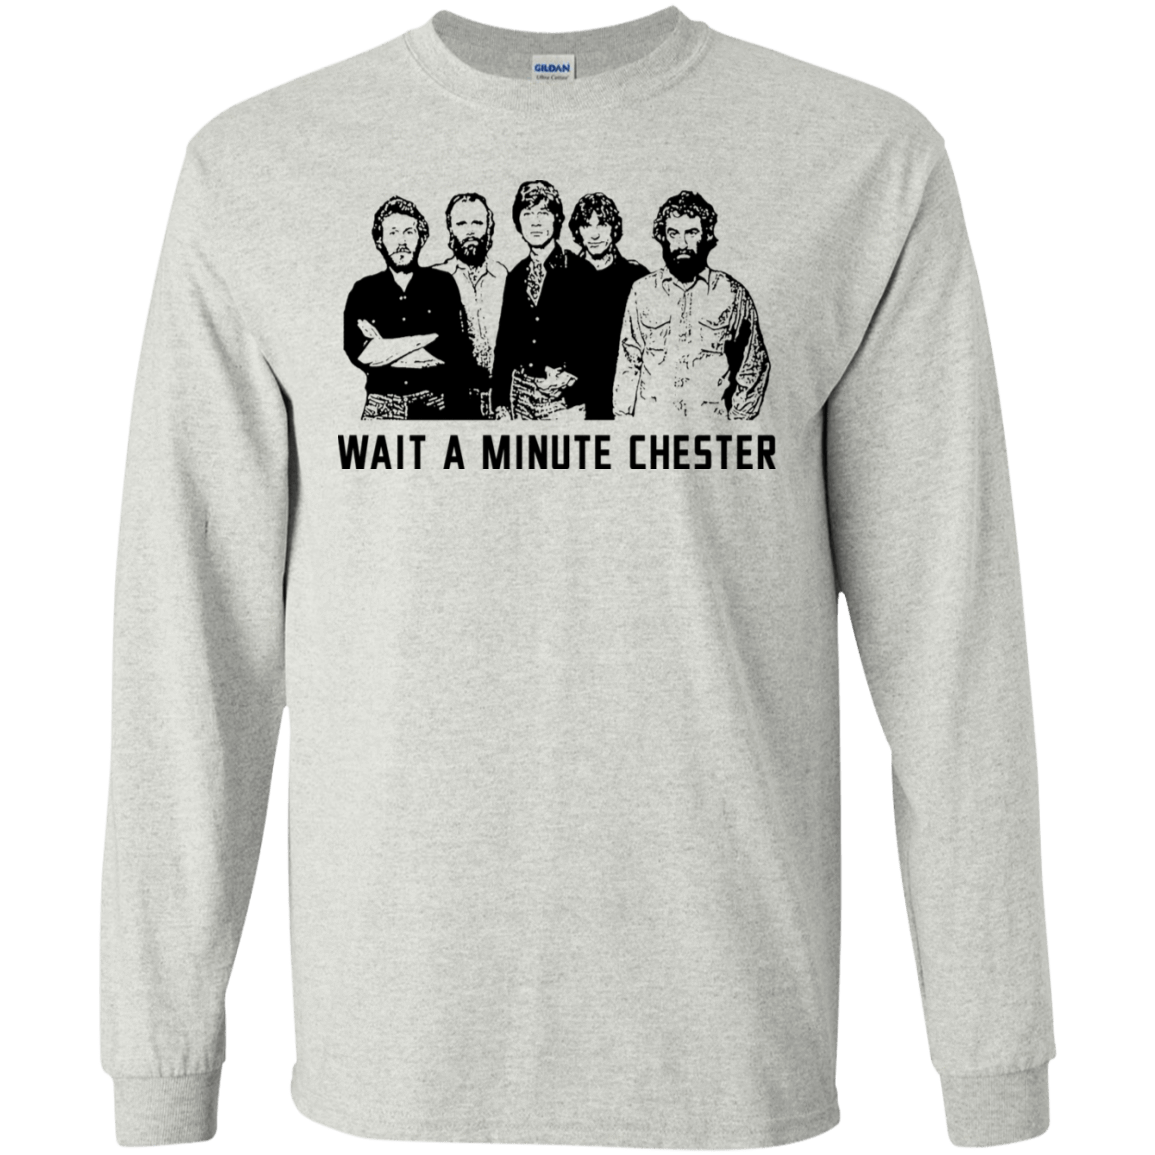 Wait A Minute Chester The Band Version 30-2112-73889088-10754 - Tee Ript